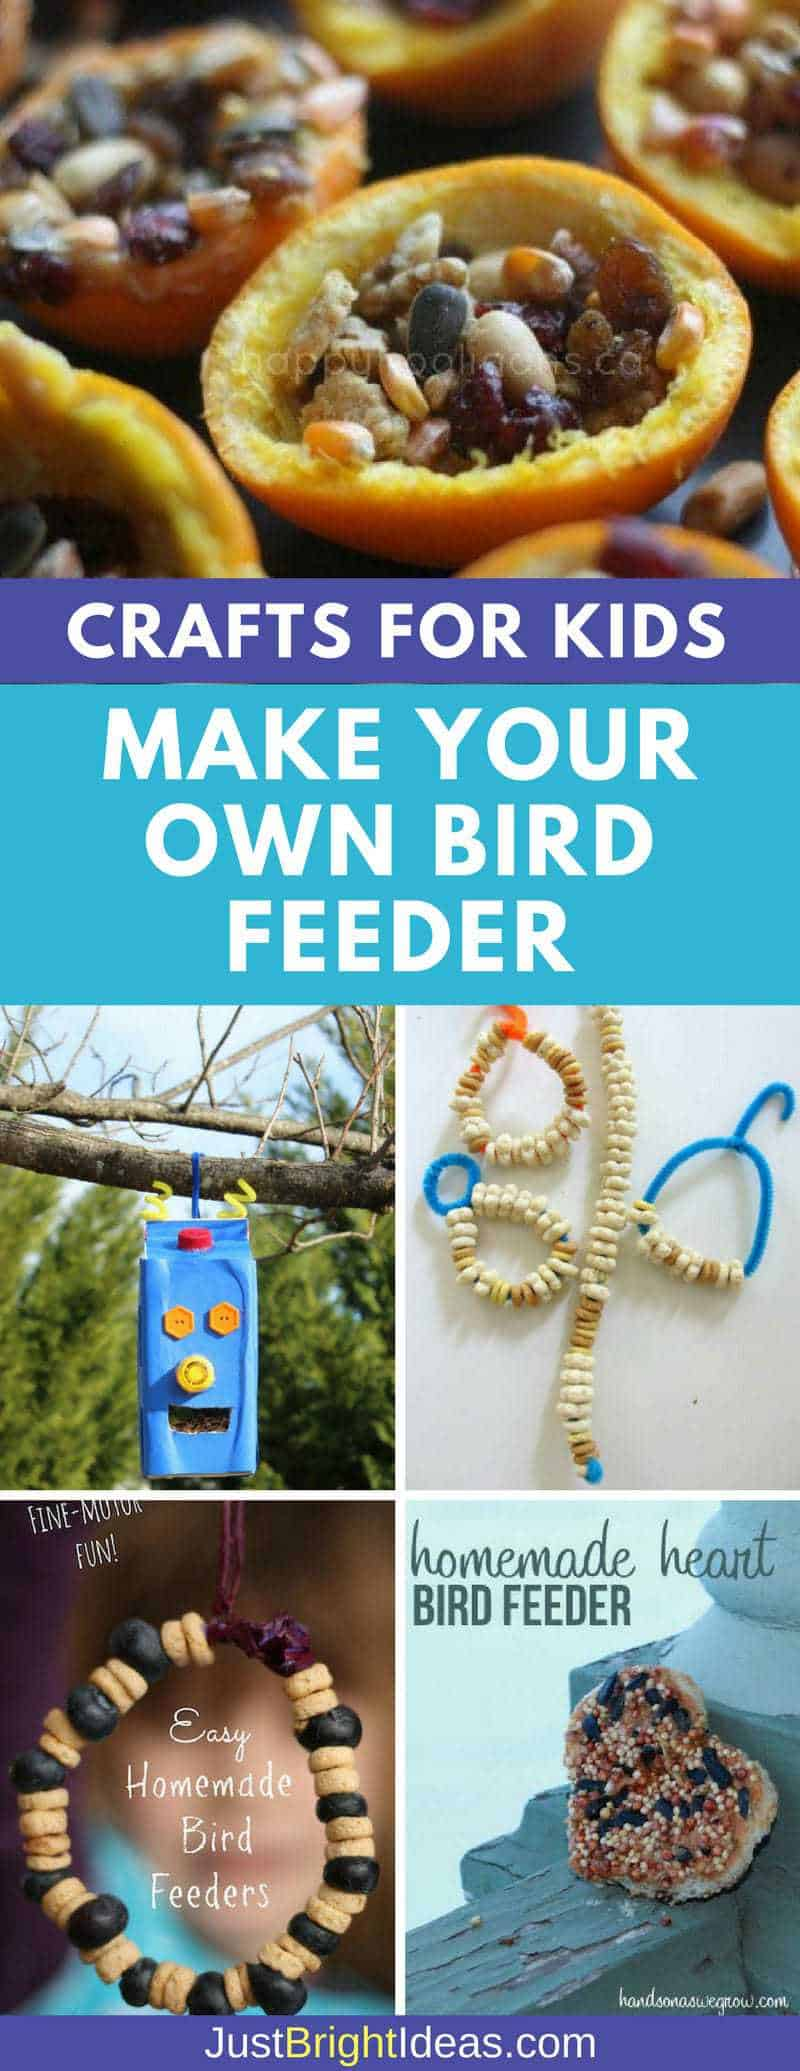 Make Your Own Bird Feeder